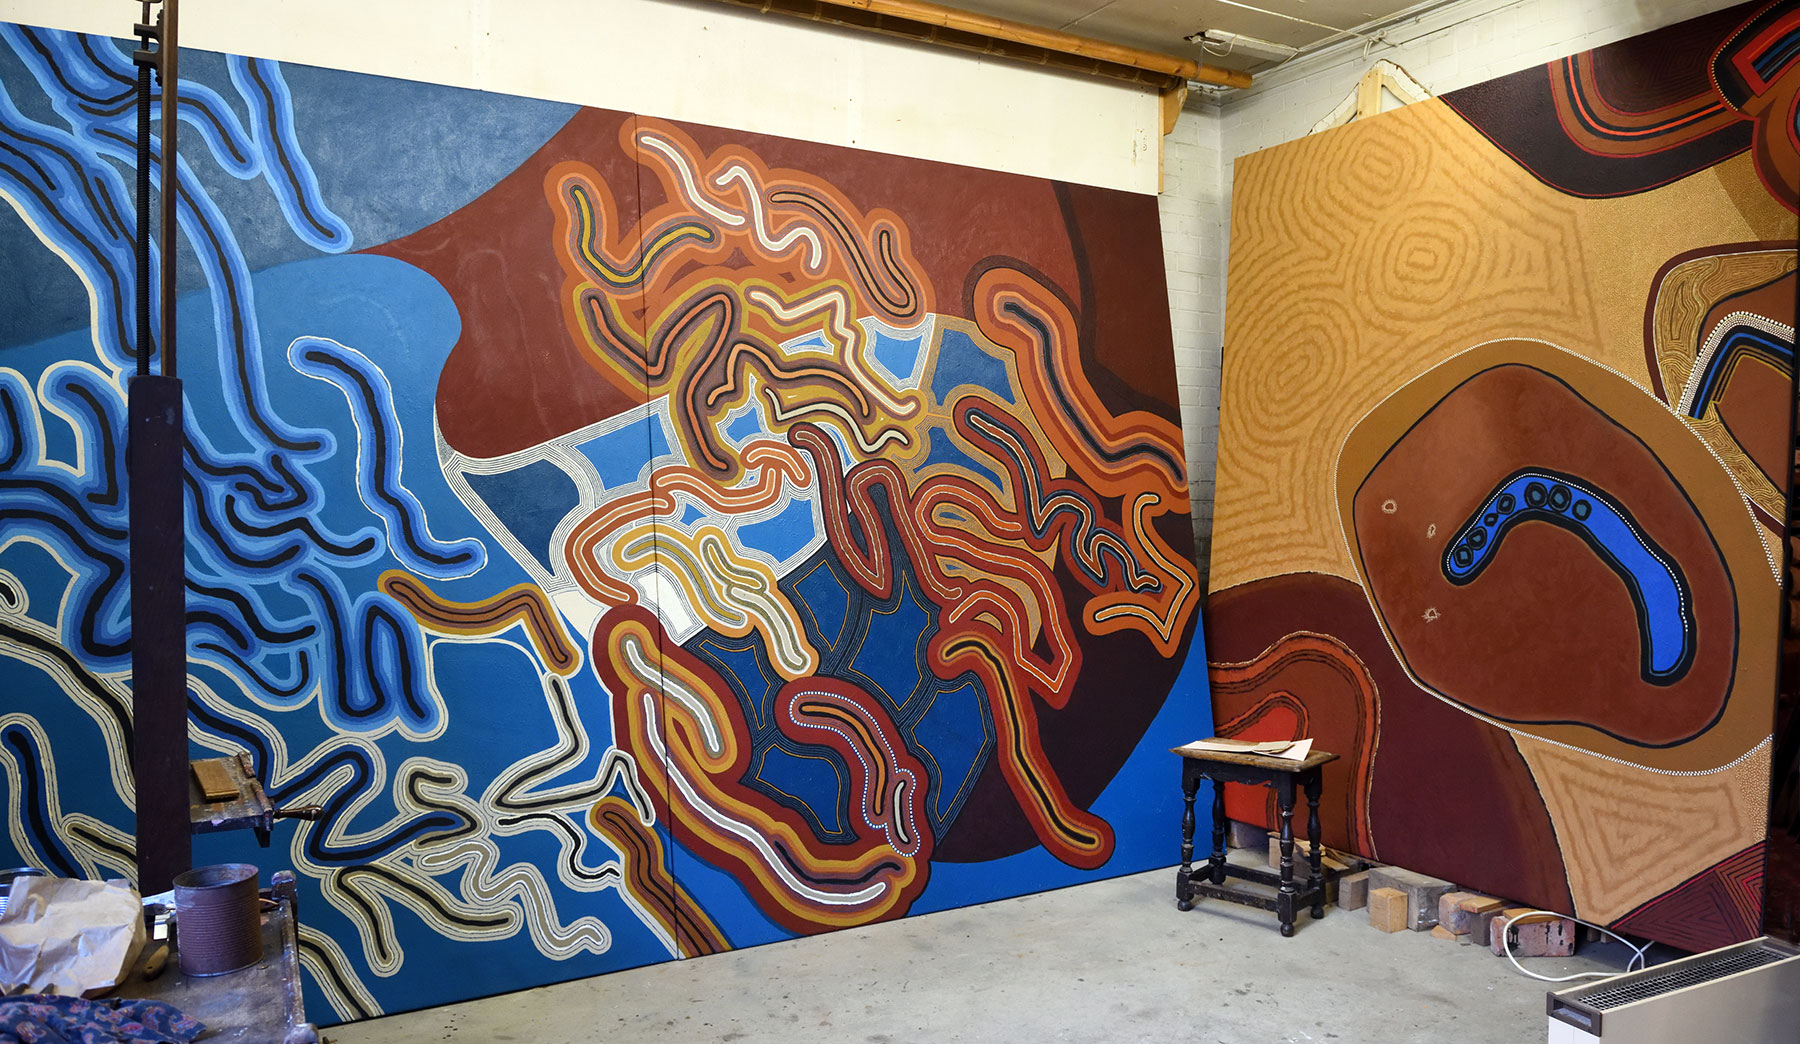 Studio view with 'Evolving Boundaries', 2006, and 'Emerging', 2005 (section).